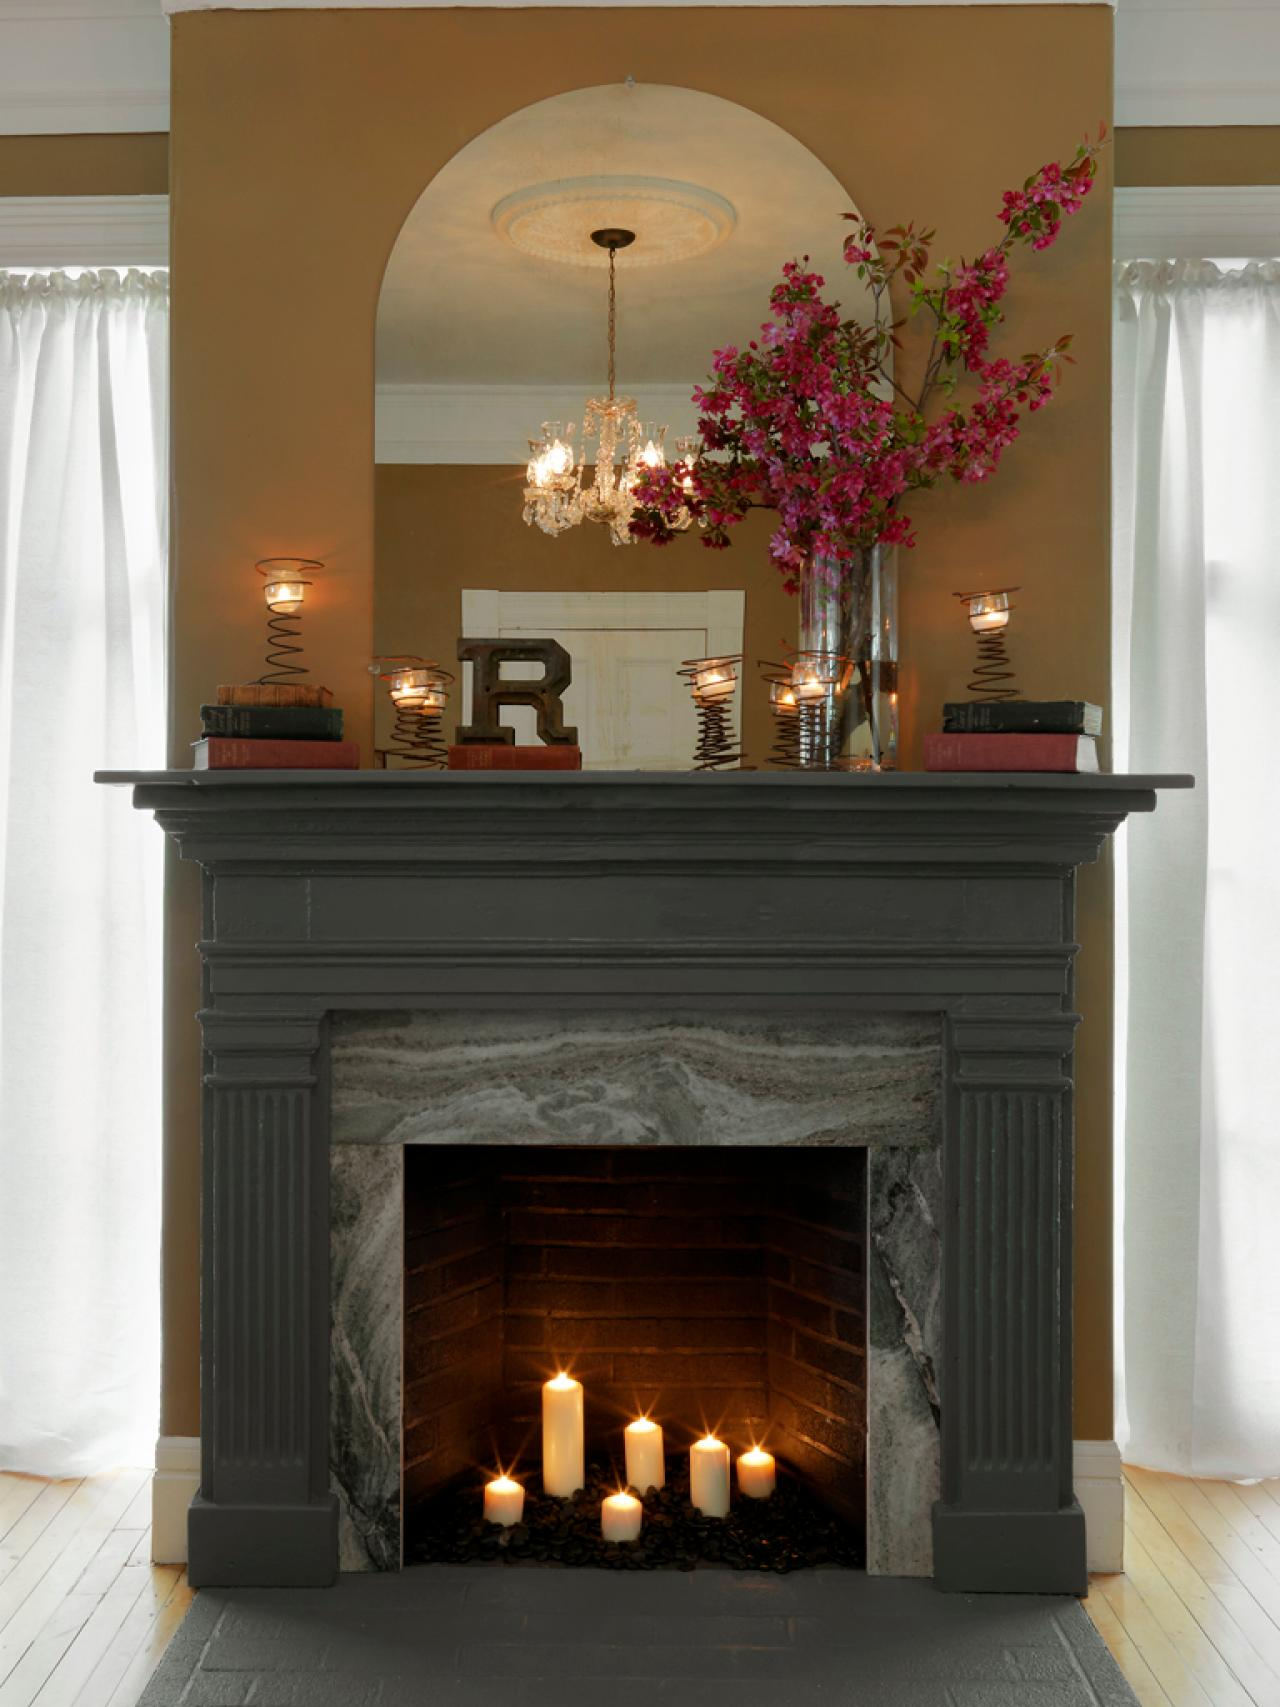 How to cover a fireplace surround and make a mantel how for How to design a fireplace mantel